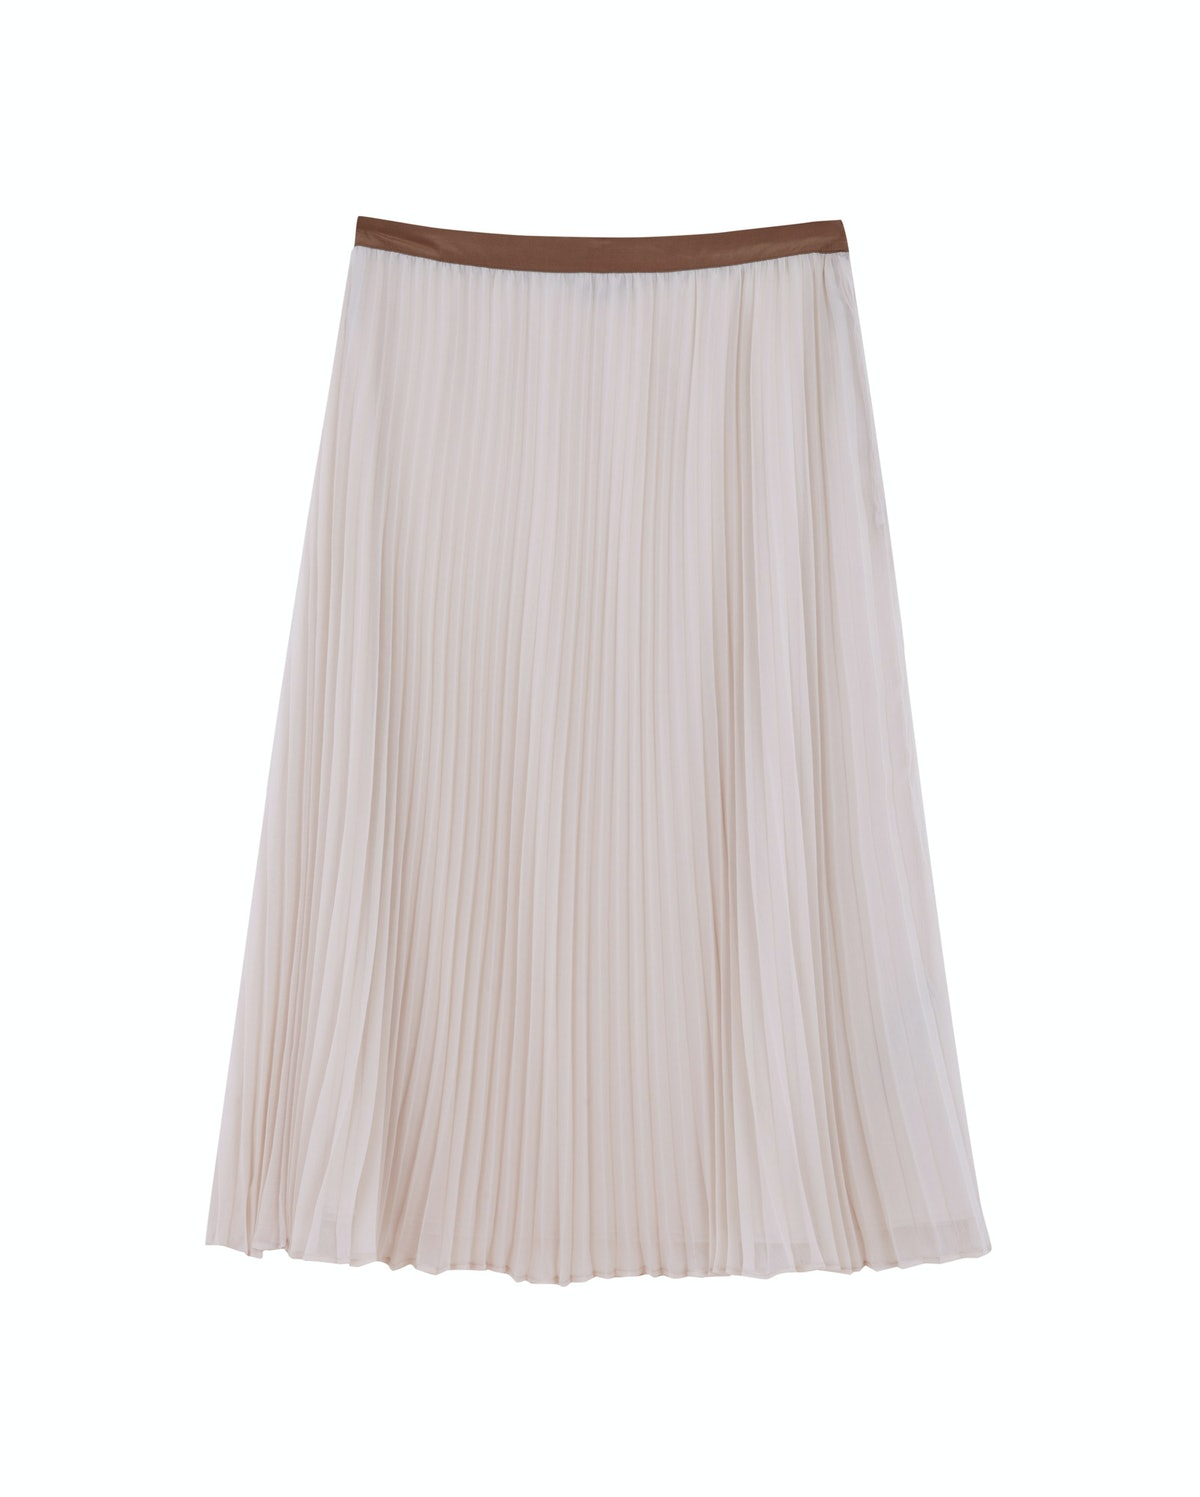 If you are going to buy one piece for spring, make it a pleated skirt. *Massimo Dutti pleated midi skirt, $98,* [*massimodutti.com*](http://www.massimodutti.com/webapp/wcs/stores/servlet/product/duttius/en/massimoduttins/675004/3577341/PLEATED%2BMIDI%2BSKIRT)